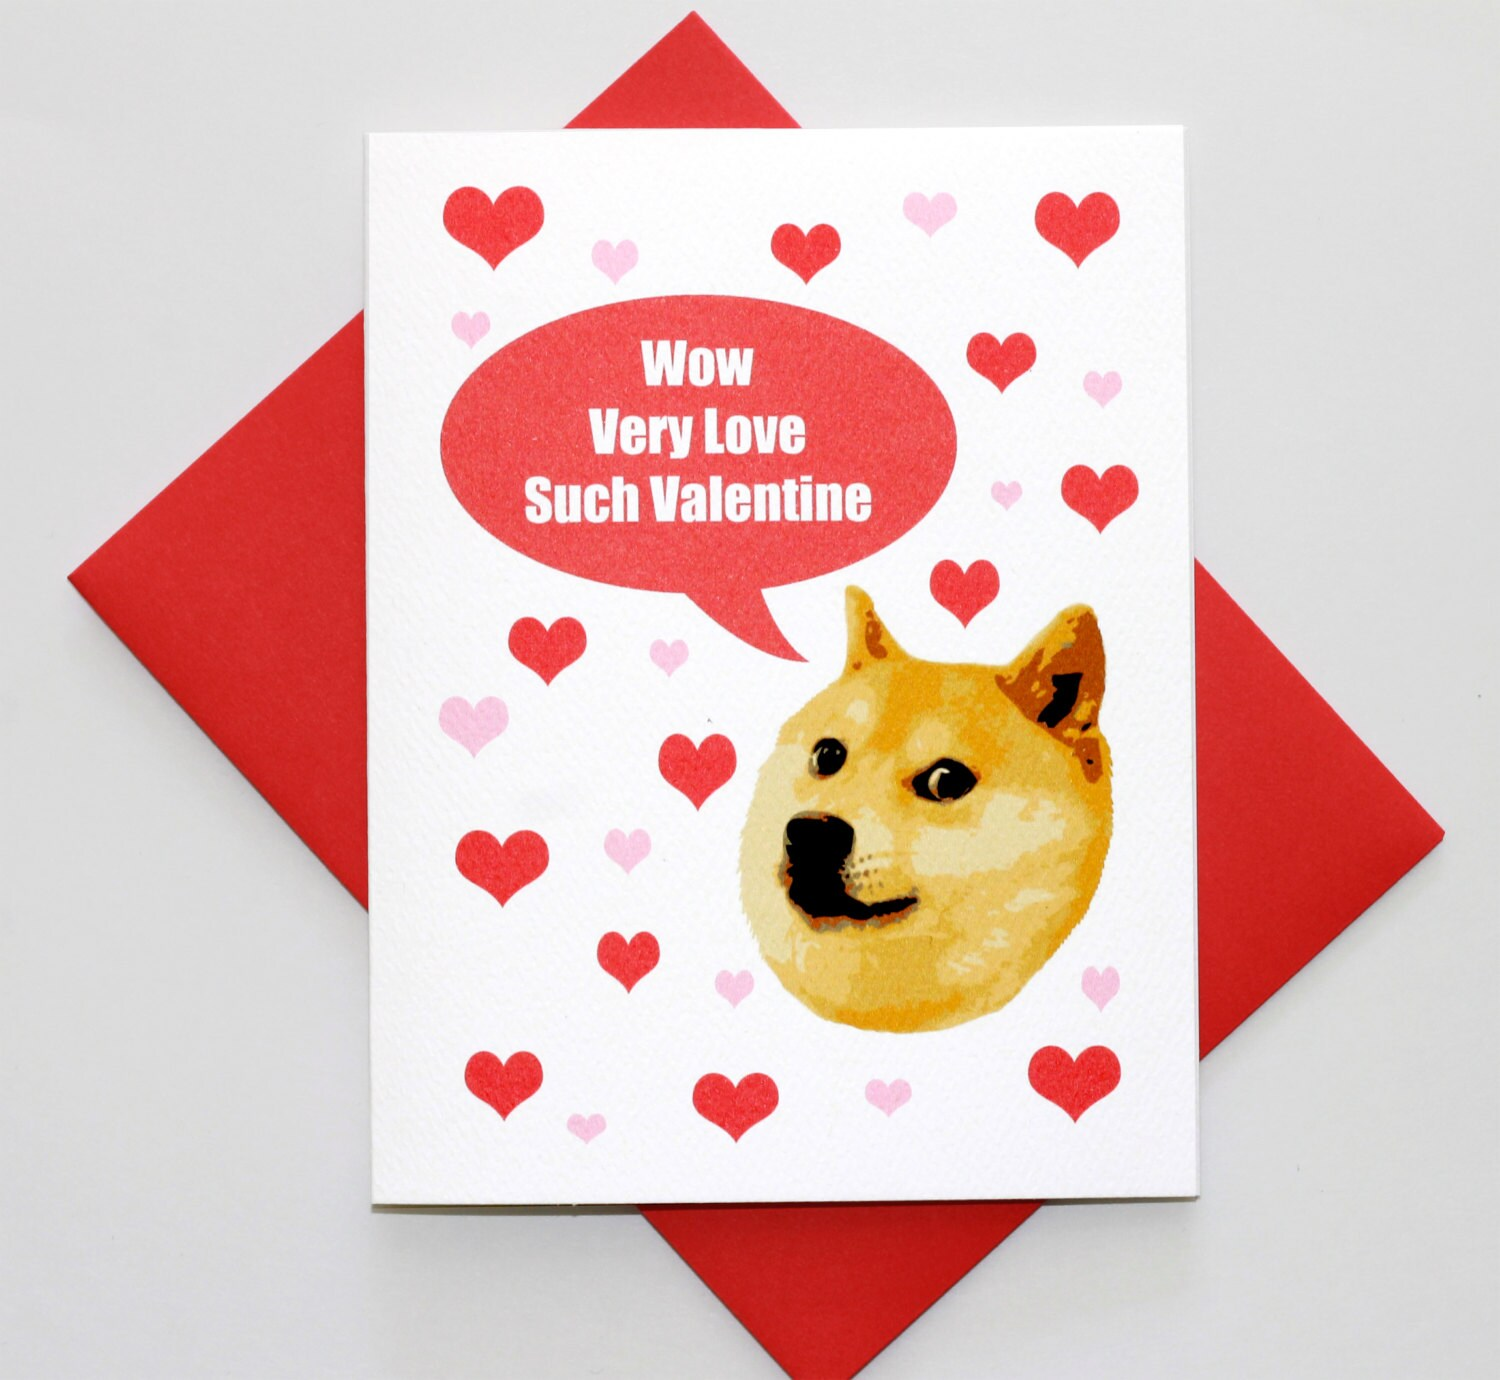 animal valentines day memes - Doge Valentine s Day Funny Meme Greeting Card Pop by